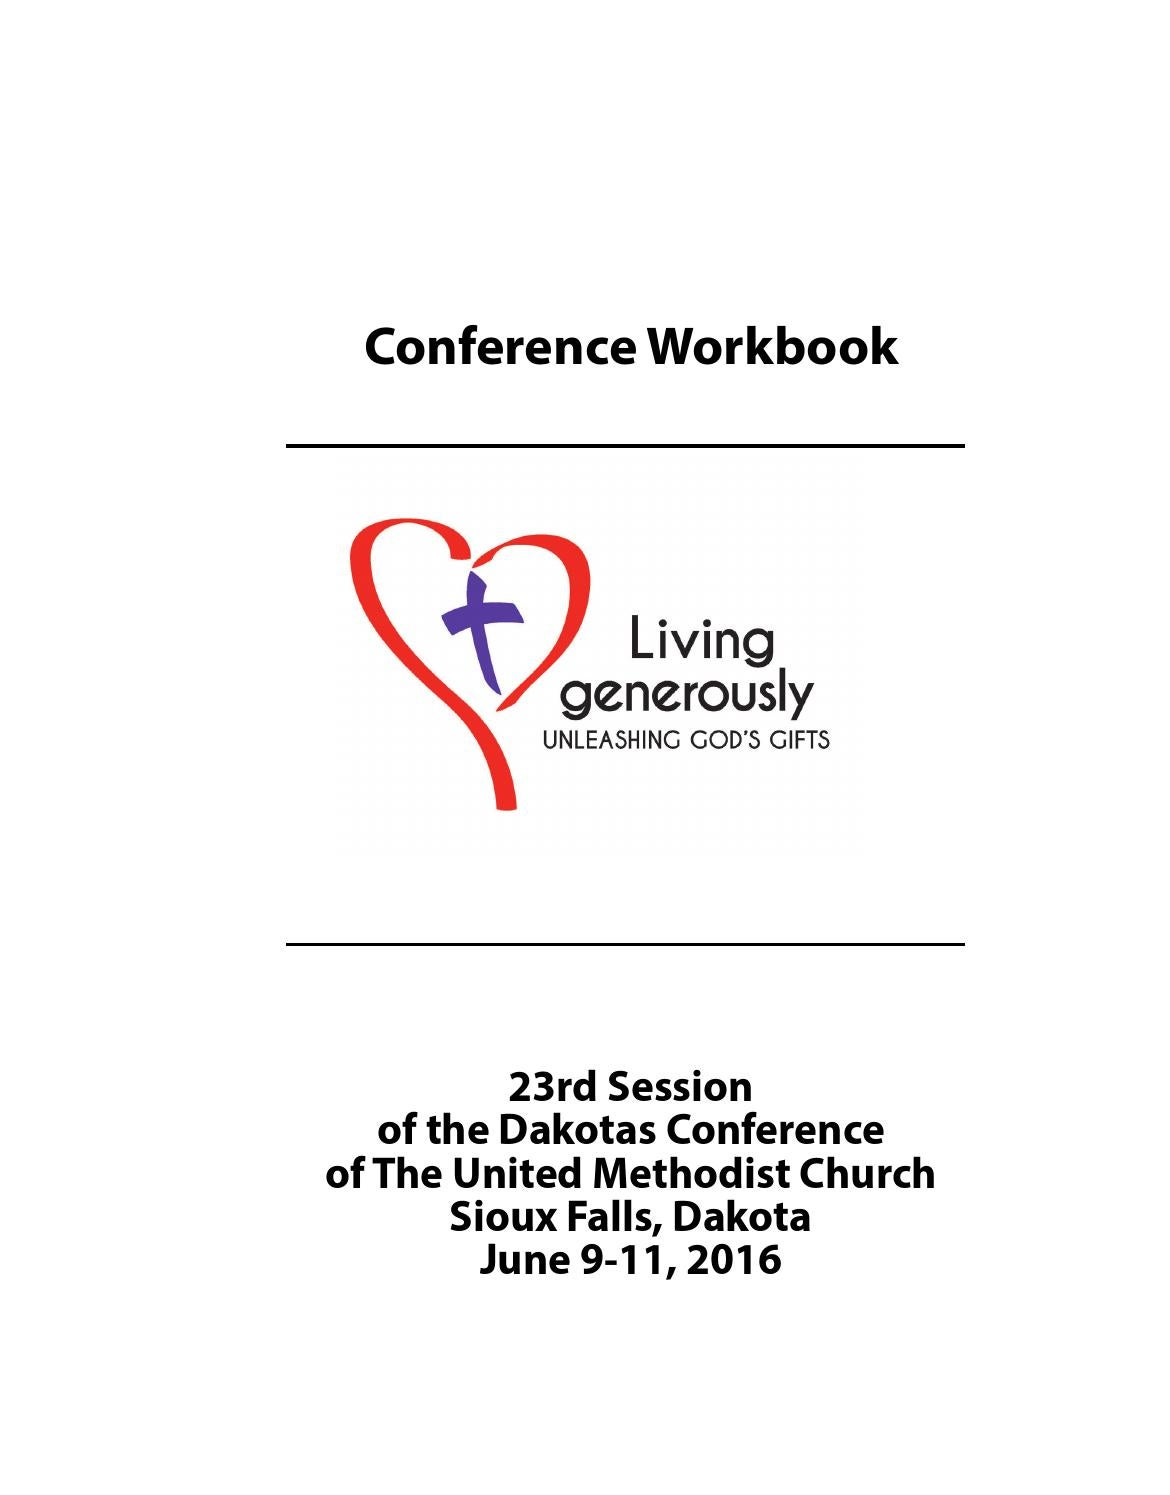 Conference Workbook 2016 by Dakotas Conference UMC - issuu